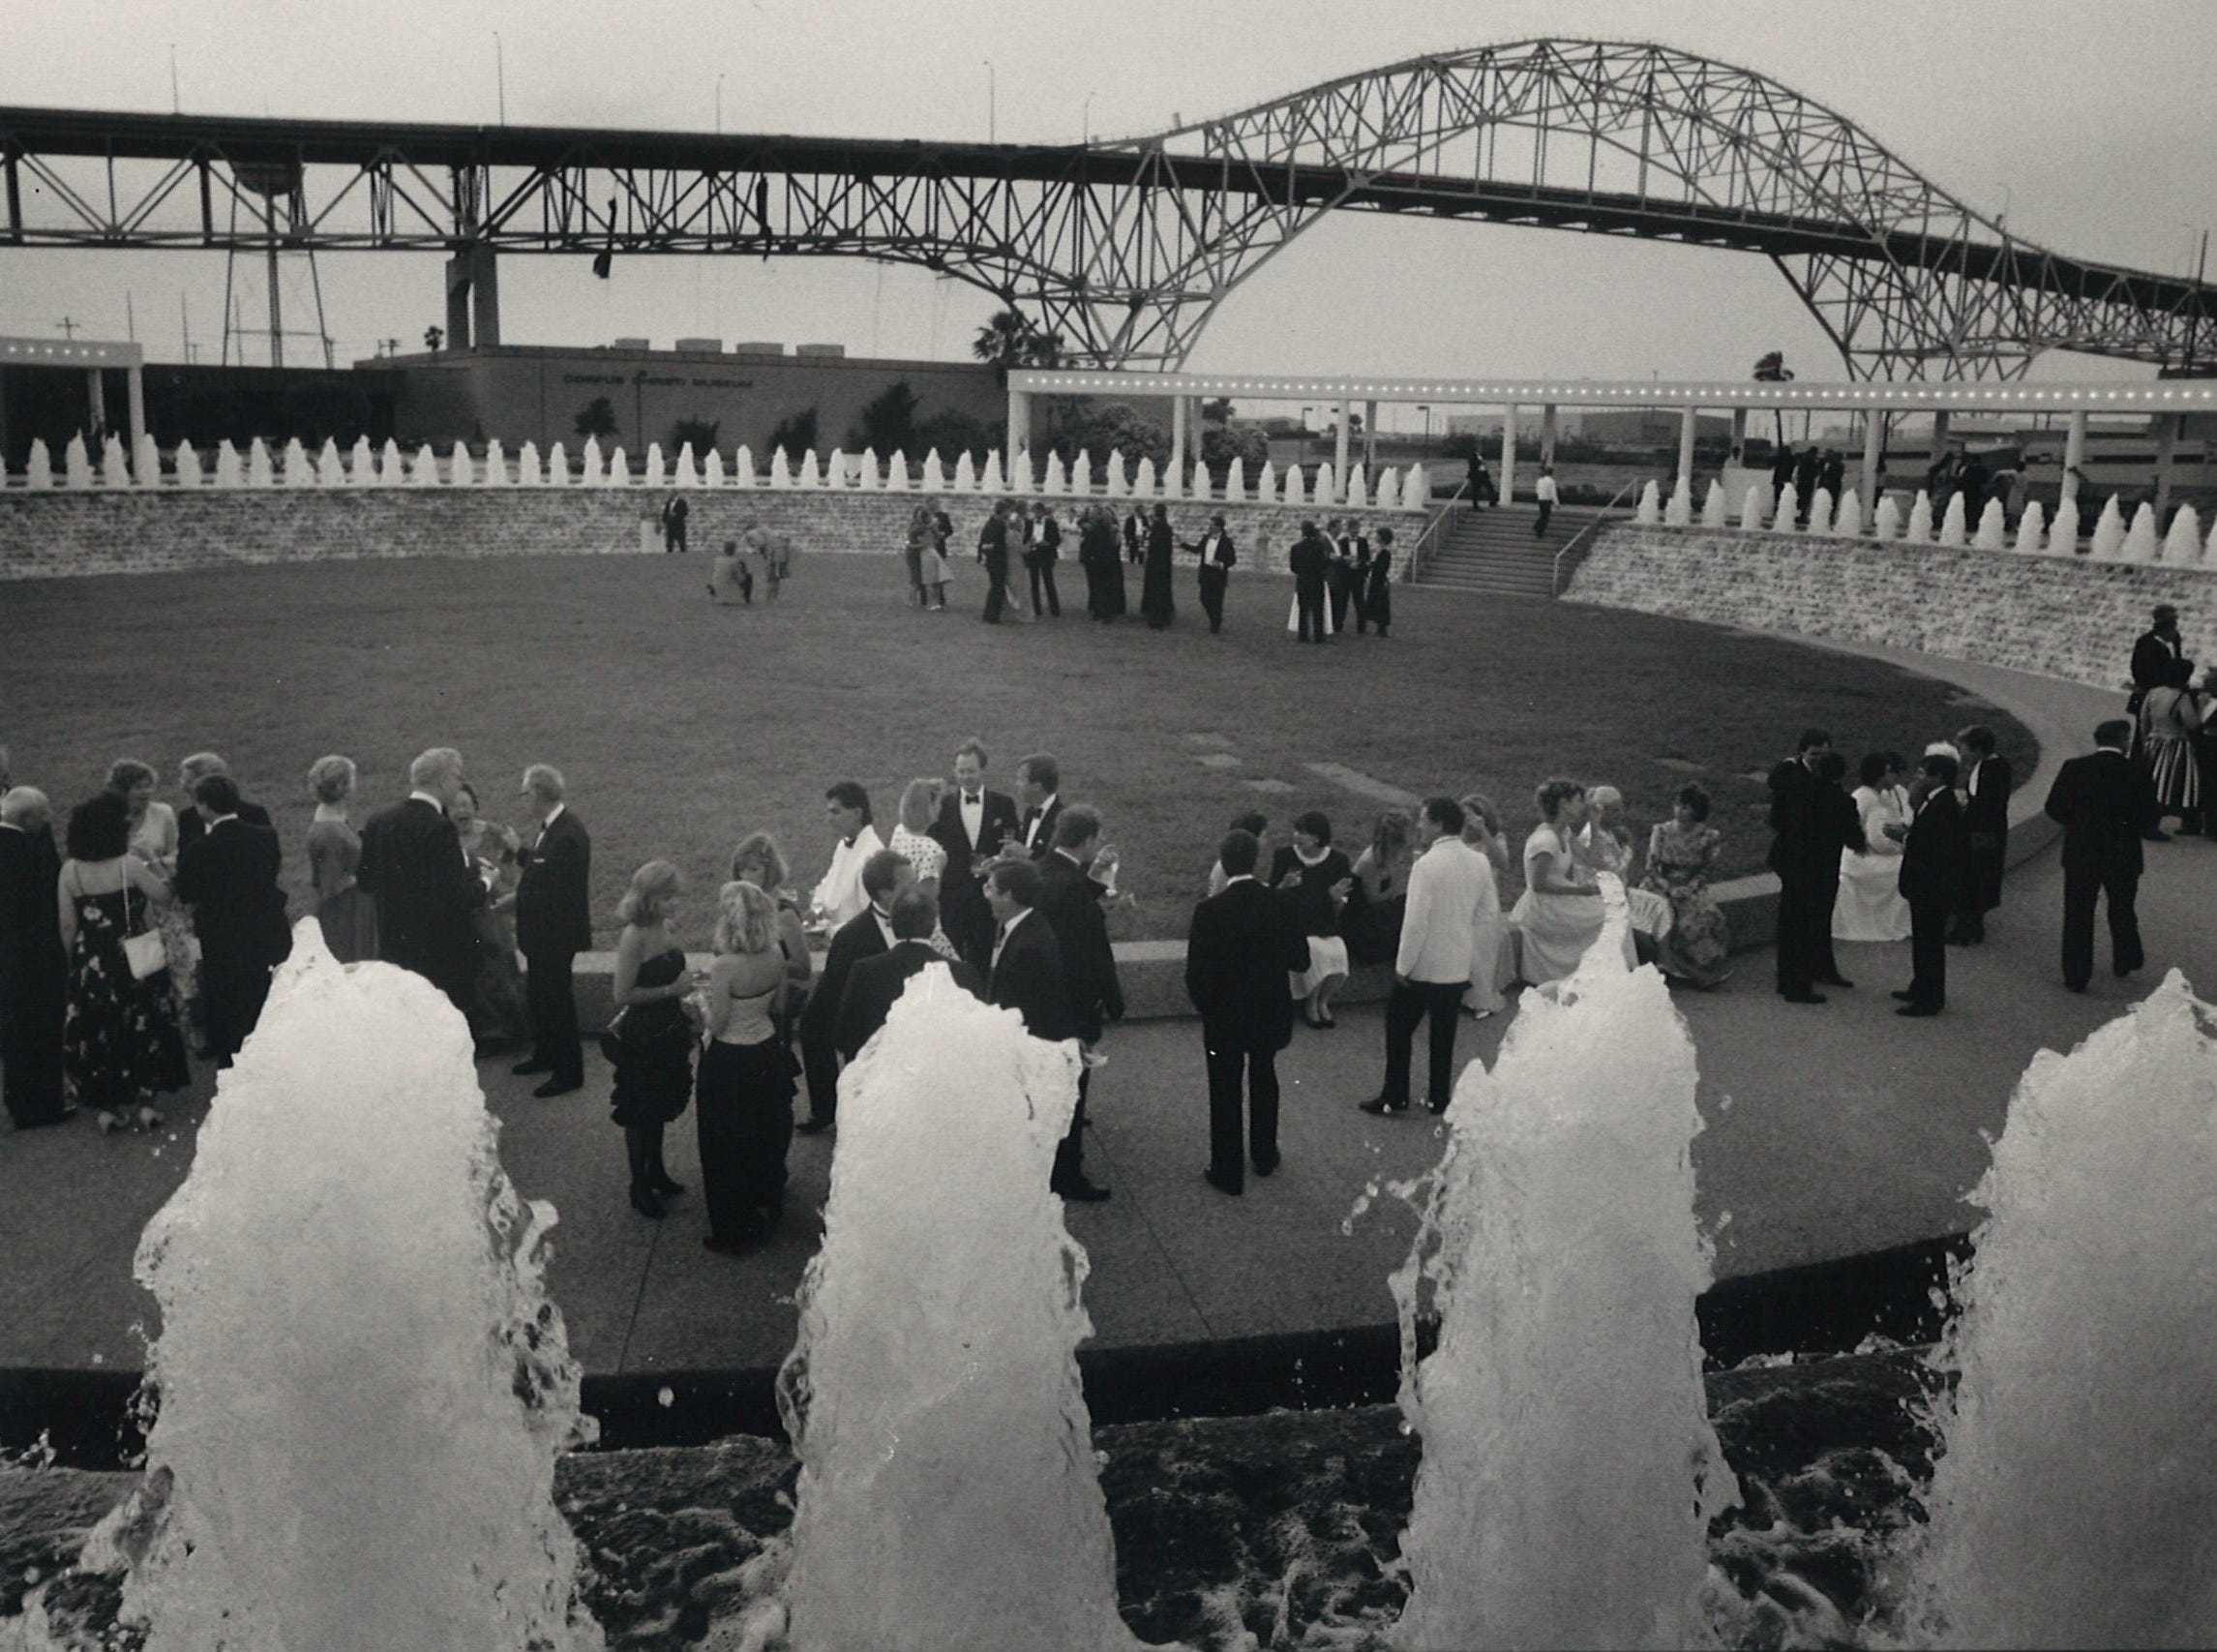 Partygoers mingle in the Corpus Christi Watergarden during the black tie opening gala on May 26, 1988.